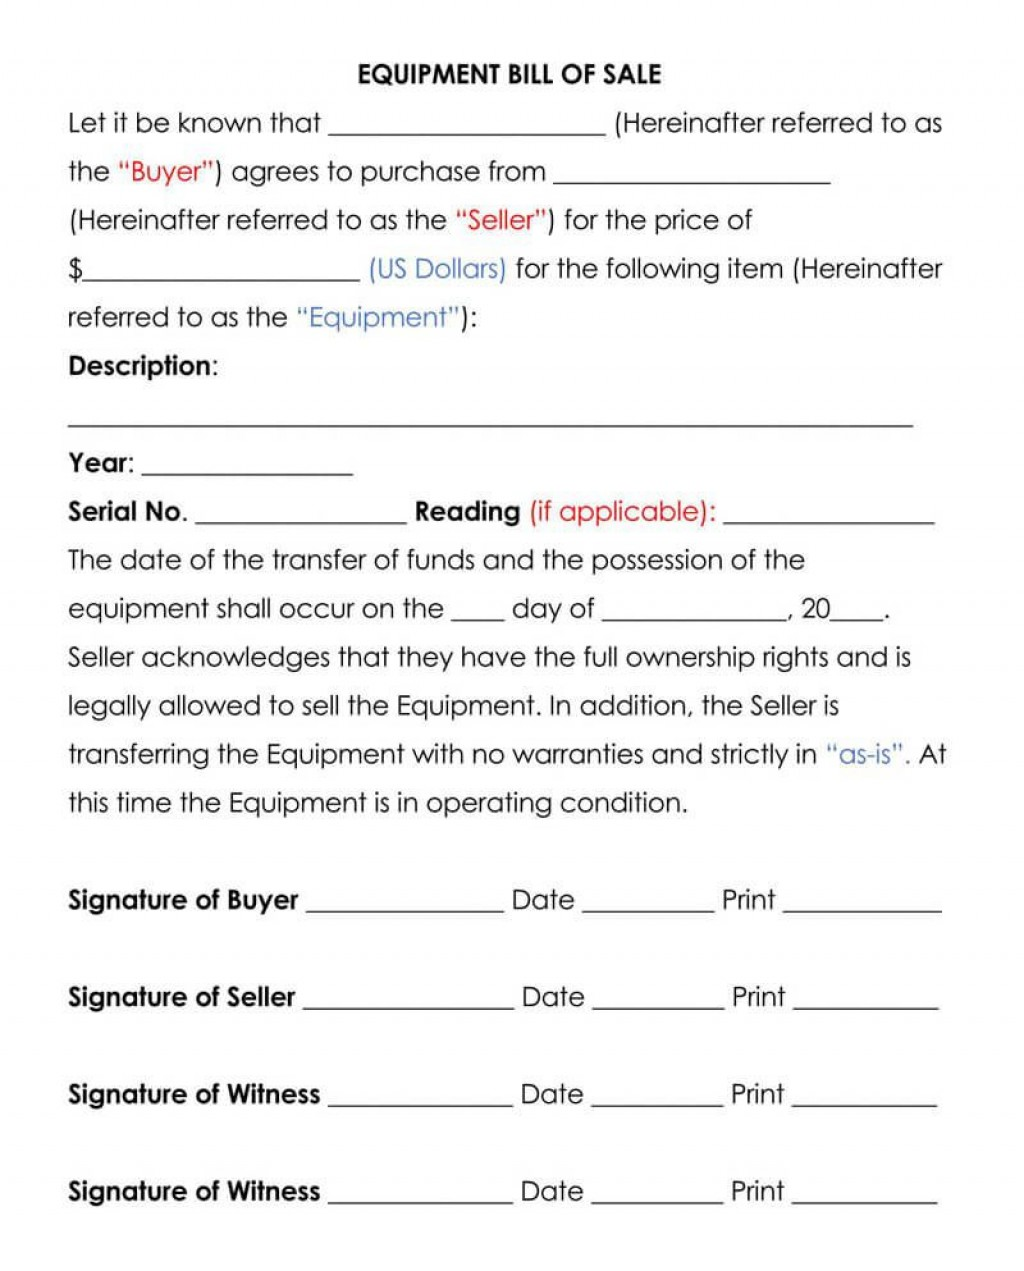 005 Wonderful Equipment Bill Of Sale Form Sample  Forms Word Document Alberta Simple TemplateLarge